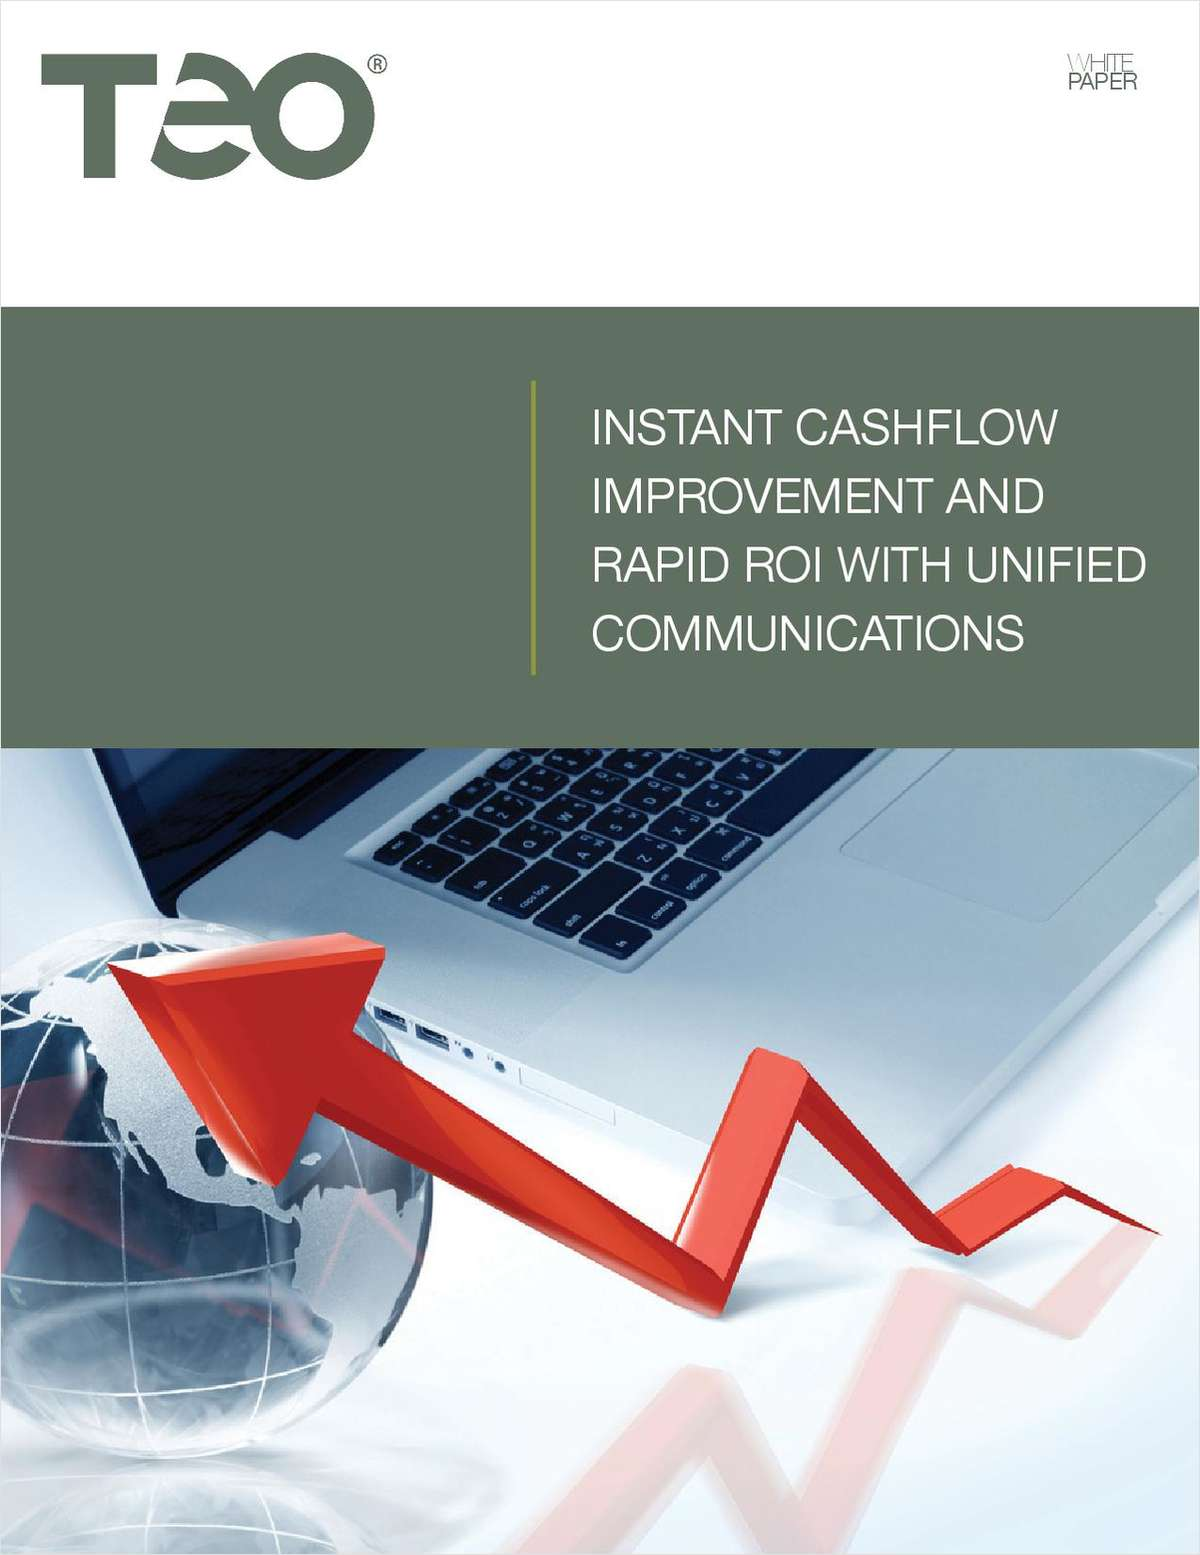 Instant Cashflow Improvement and Rapid ROI with Unified Communications